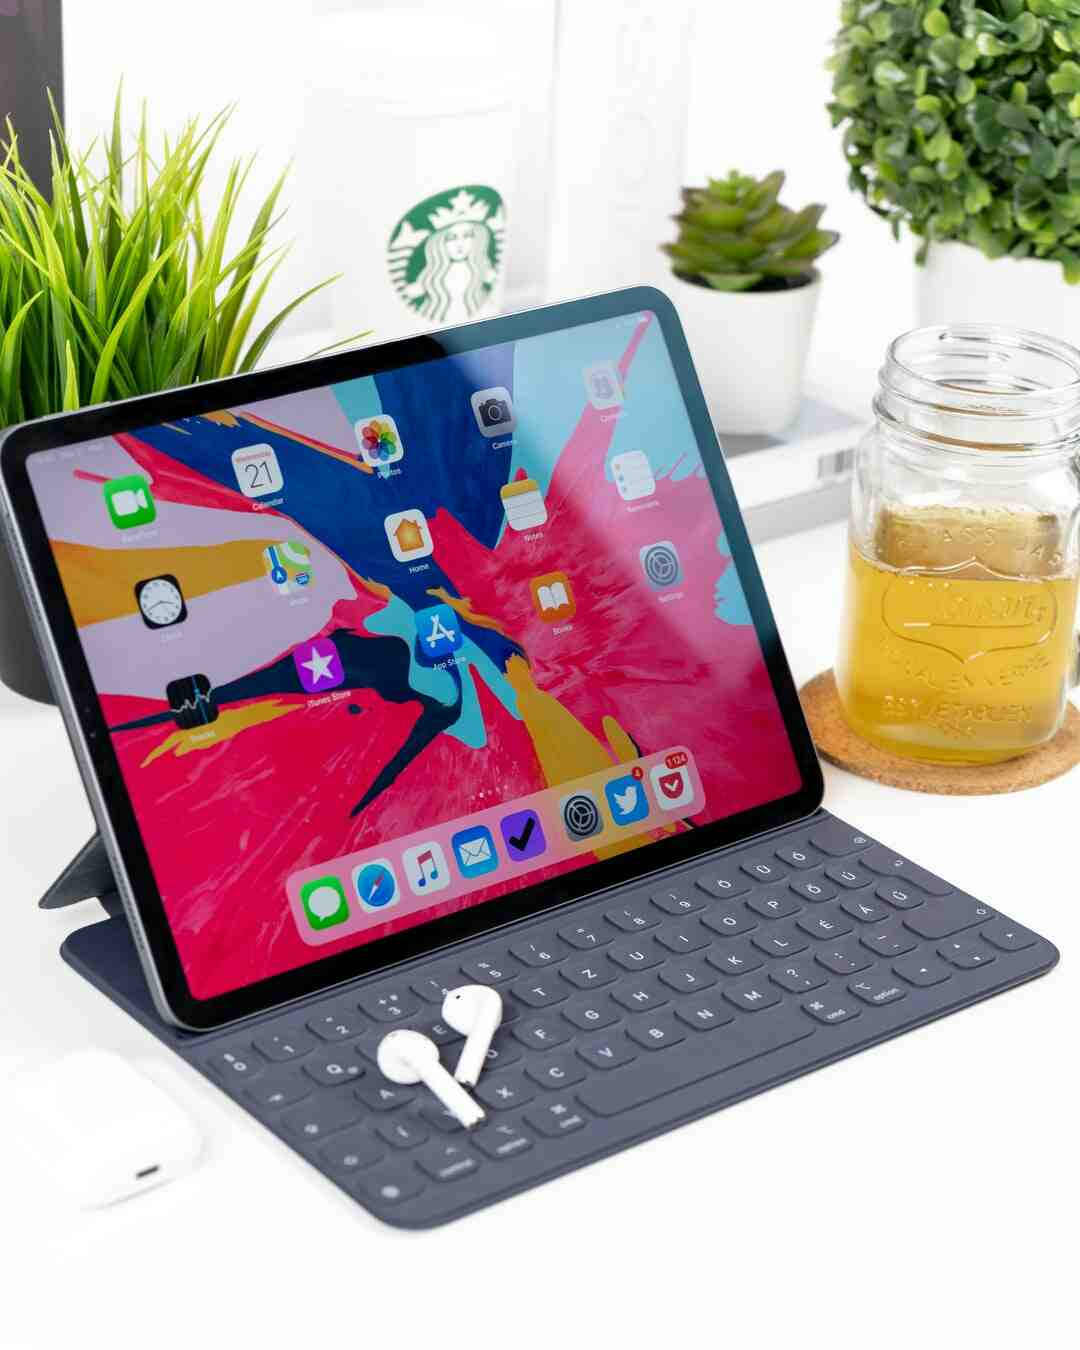 How to know ipad model